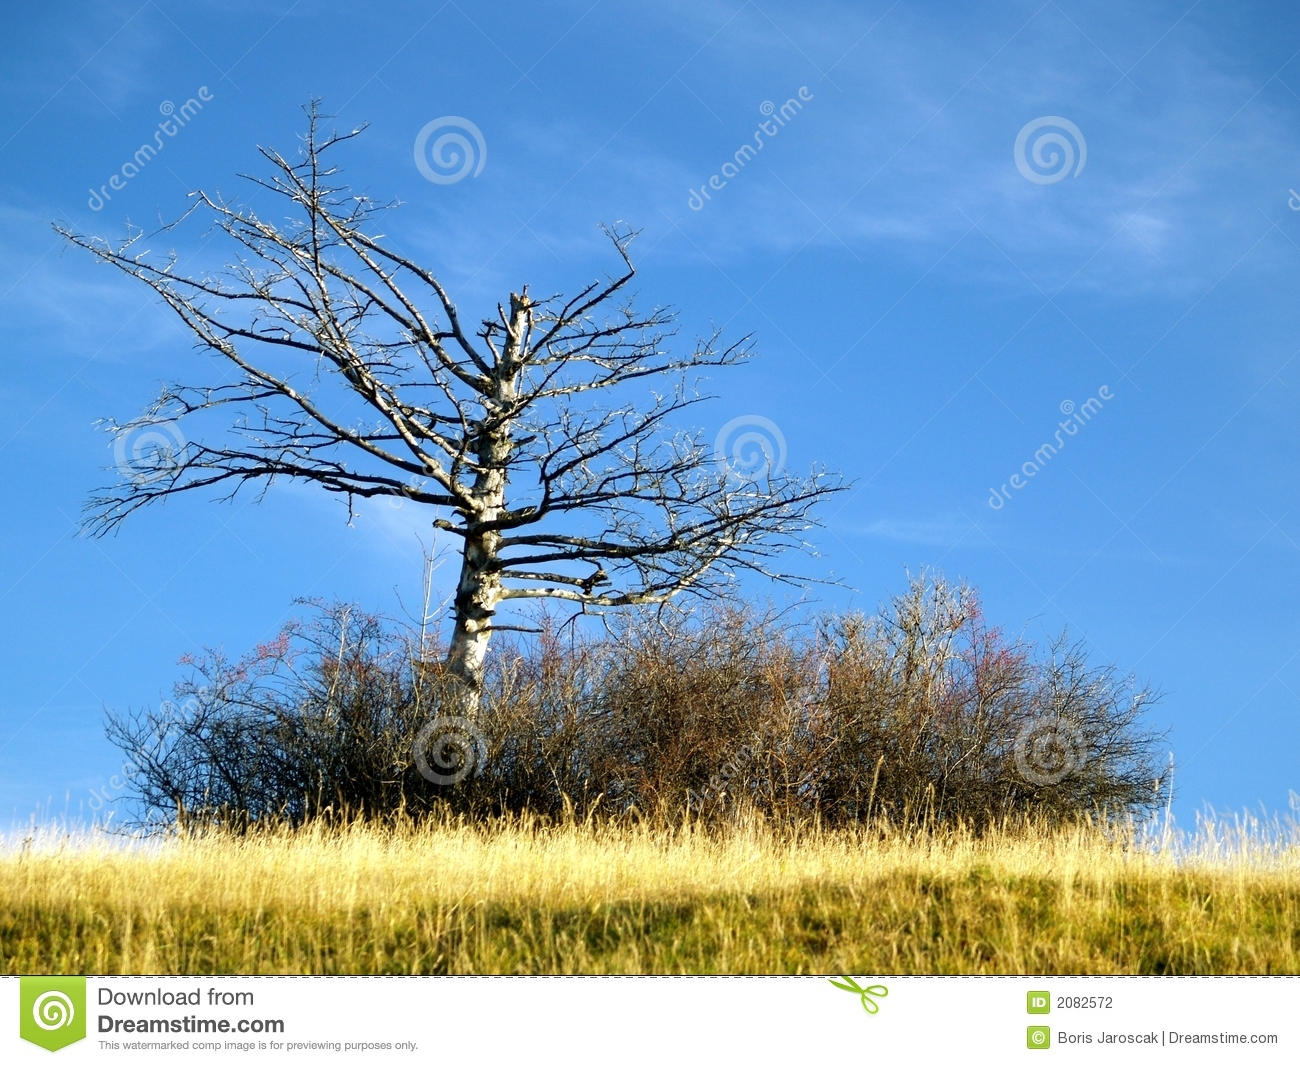 Bare branched tree in meadow